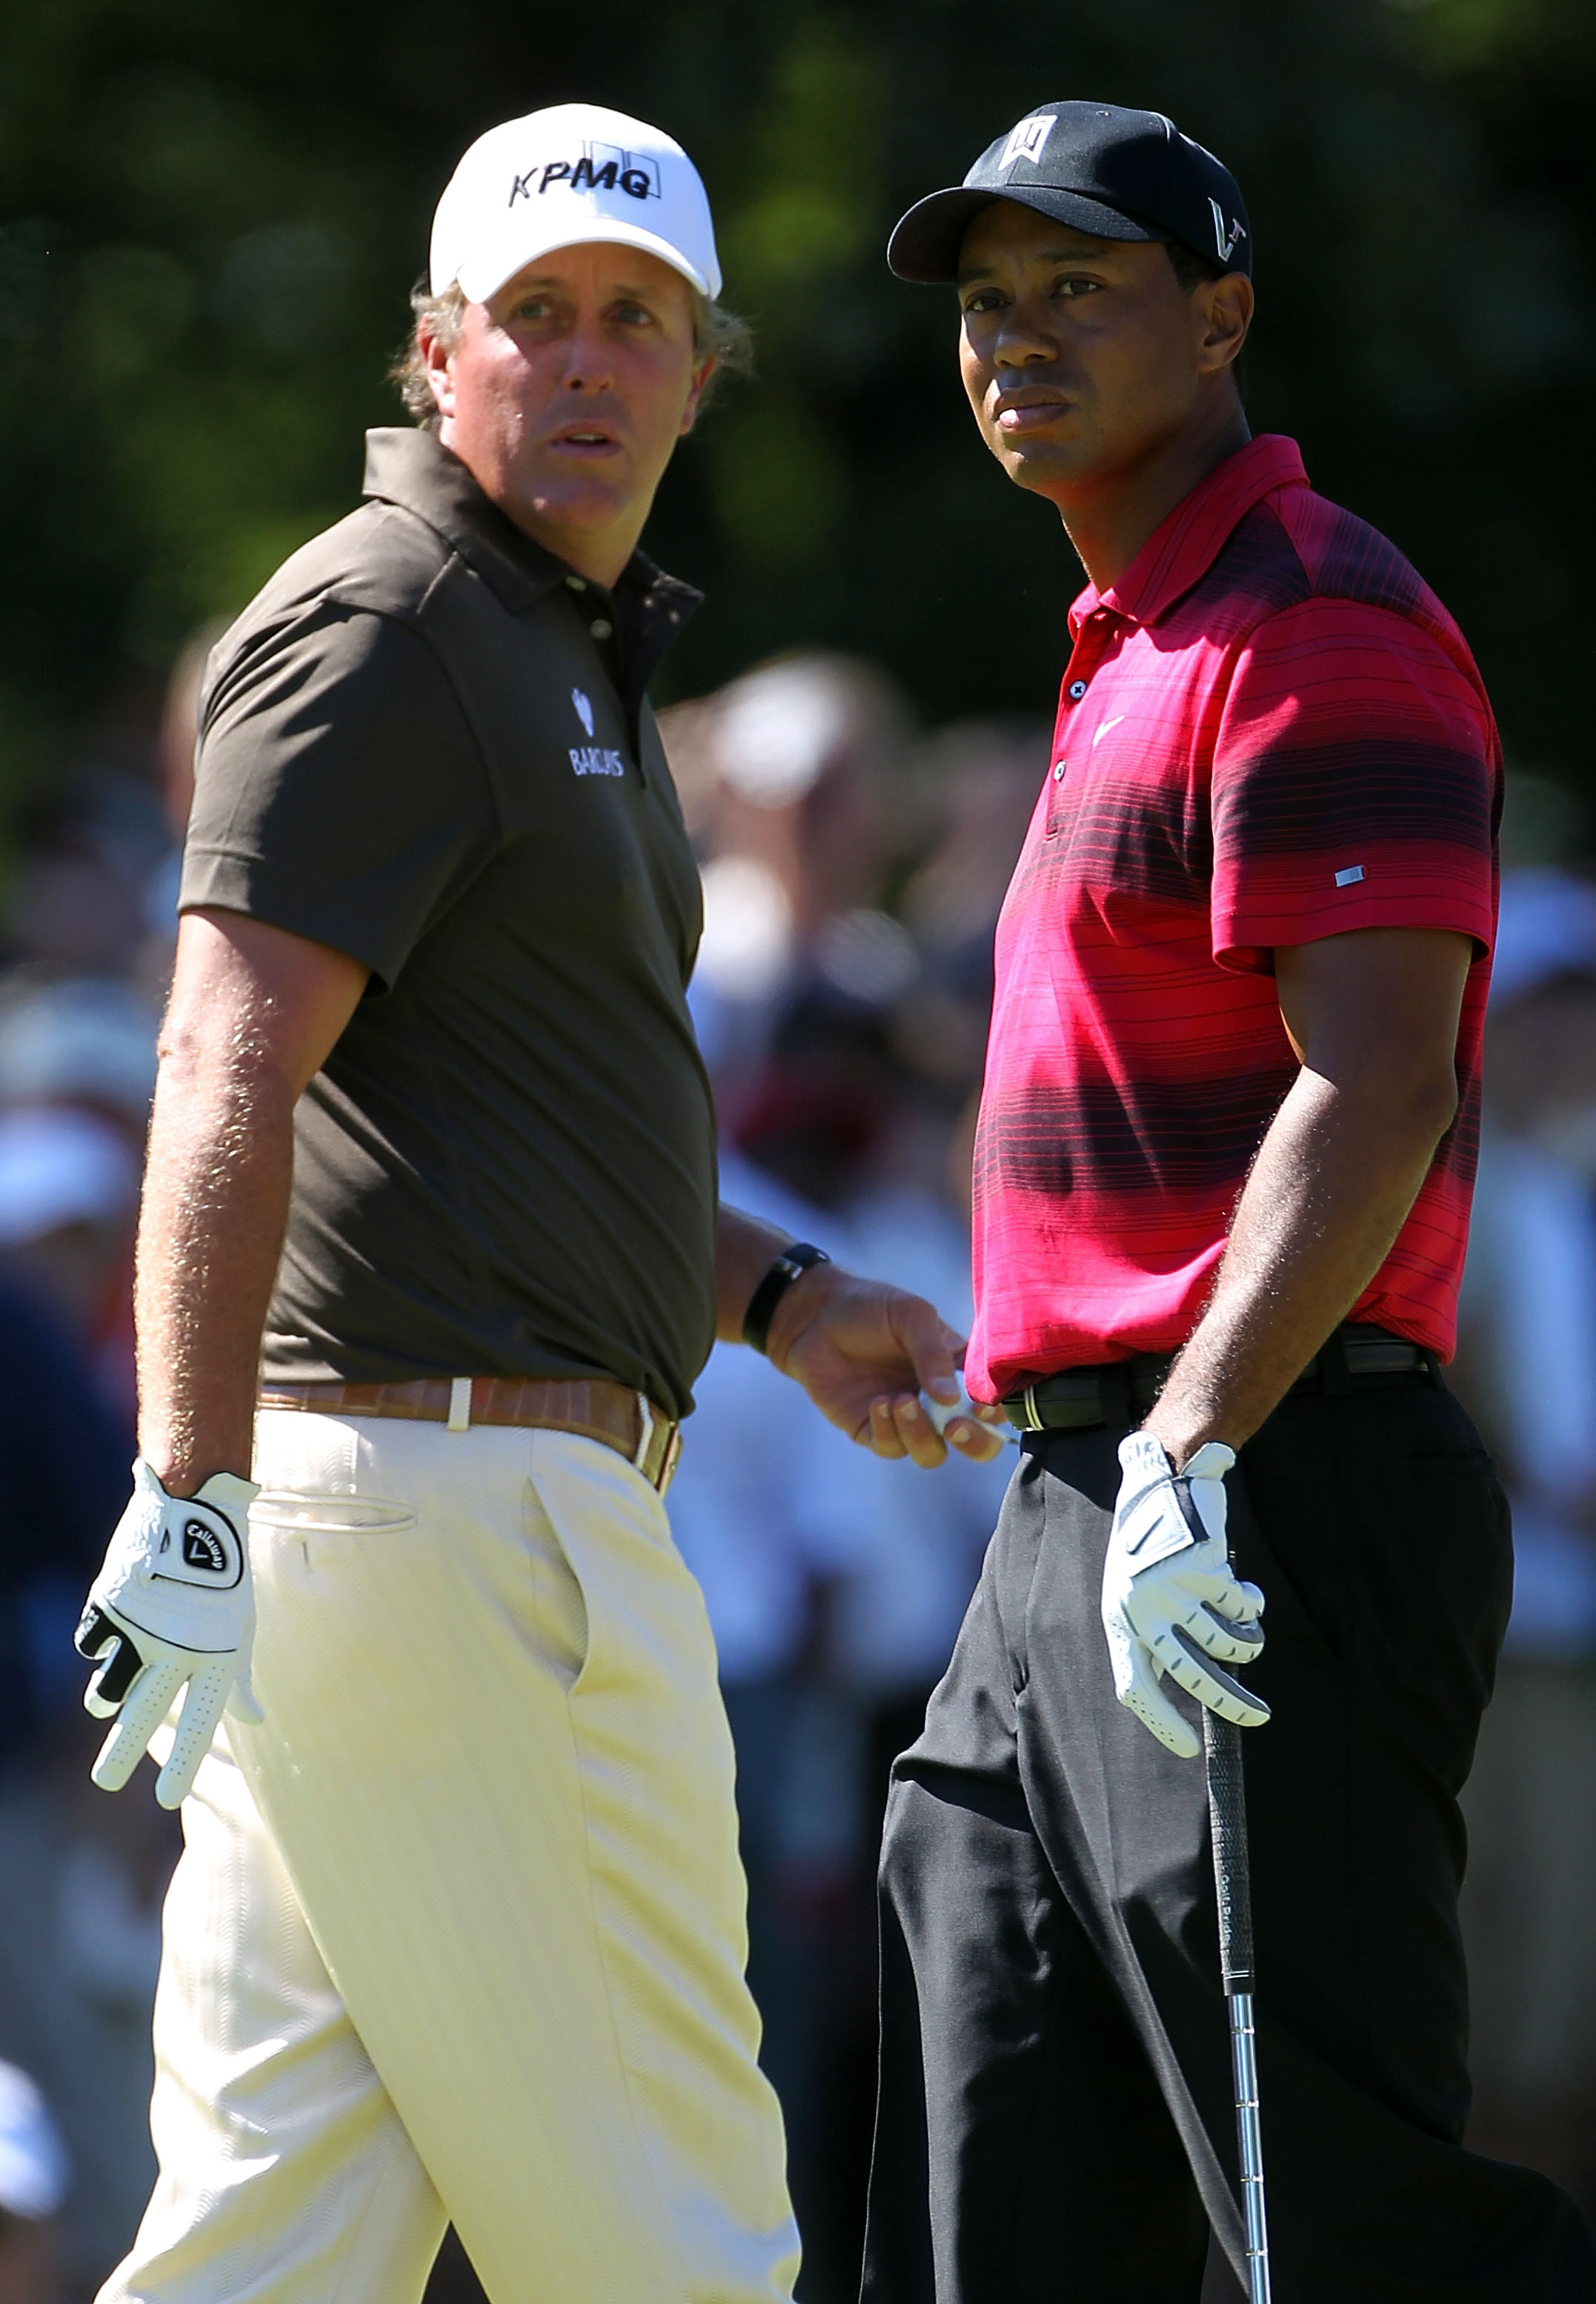 LEMONT, IL - SEPTEMBER 12:  Phil Mickelson and Tiger Woods pass each other by on the second hole during the final round of the BMW Championship at Cog Hill Golf & Country Club on September 12, 2010 in Lemont, Illinois.  (Photo by Jamie Squire/Getty Images